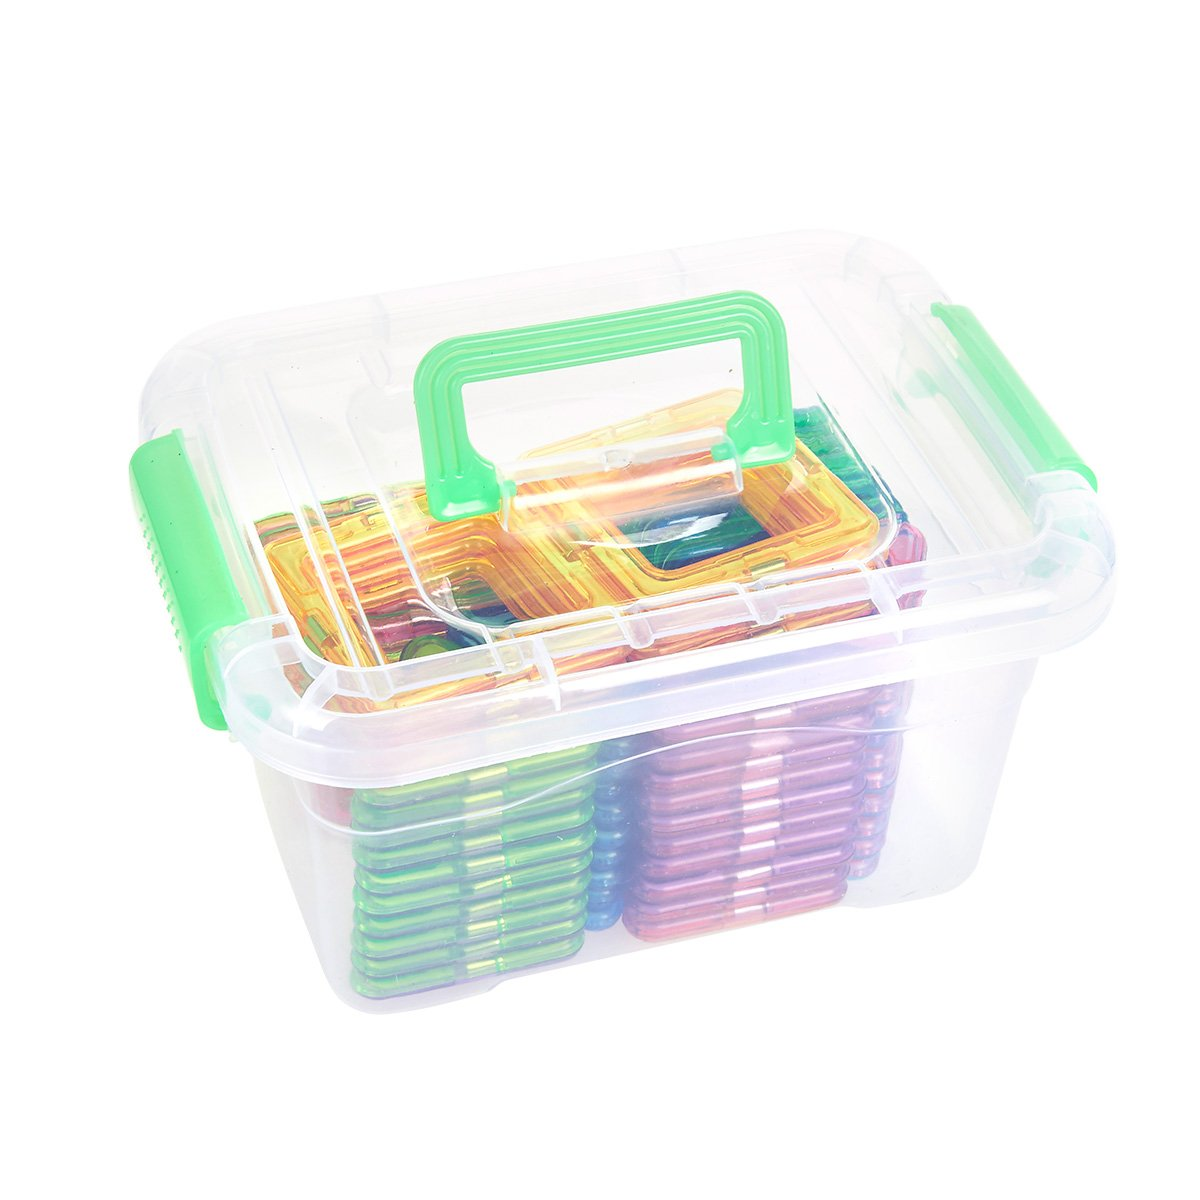 Construction Playboard Stacking Toy Juvale Magnet Building Tiles Educational Kit for Kids Assorted Colors 64-Piece Magnetic 3D Building Blocks Set with Storage Box